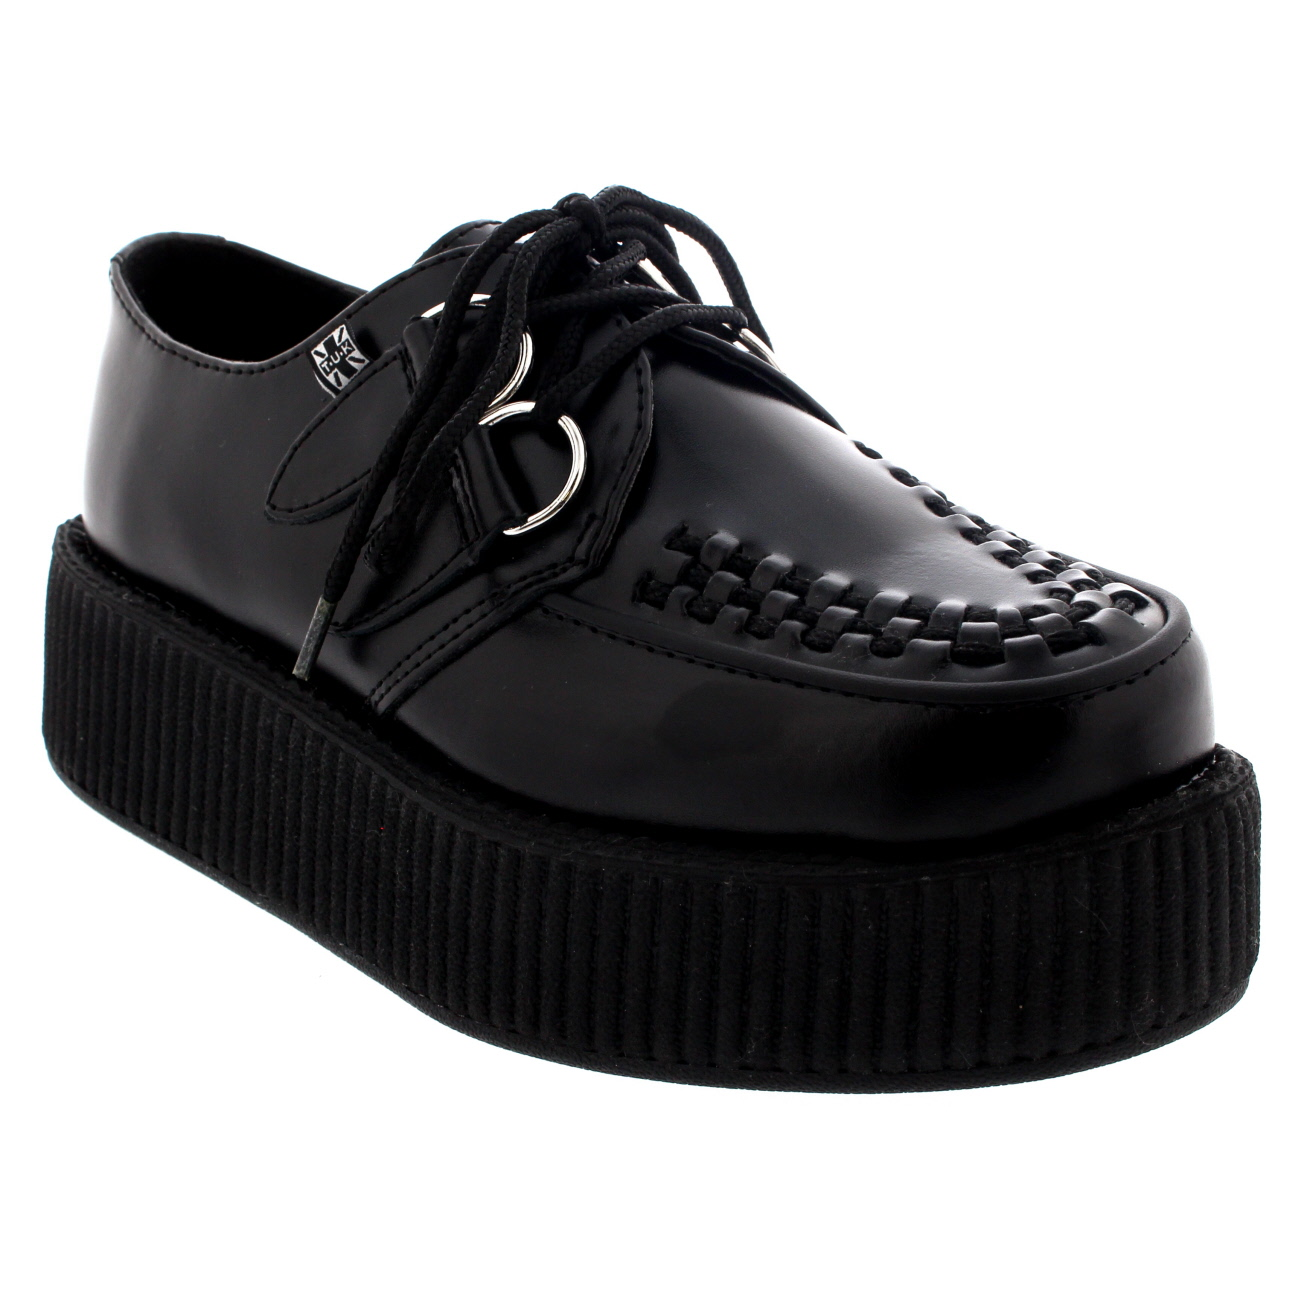 T.U.K Viva Mondo Hi Sole Creeper